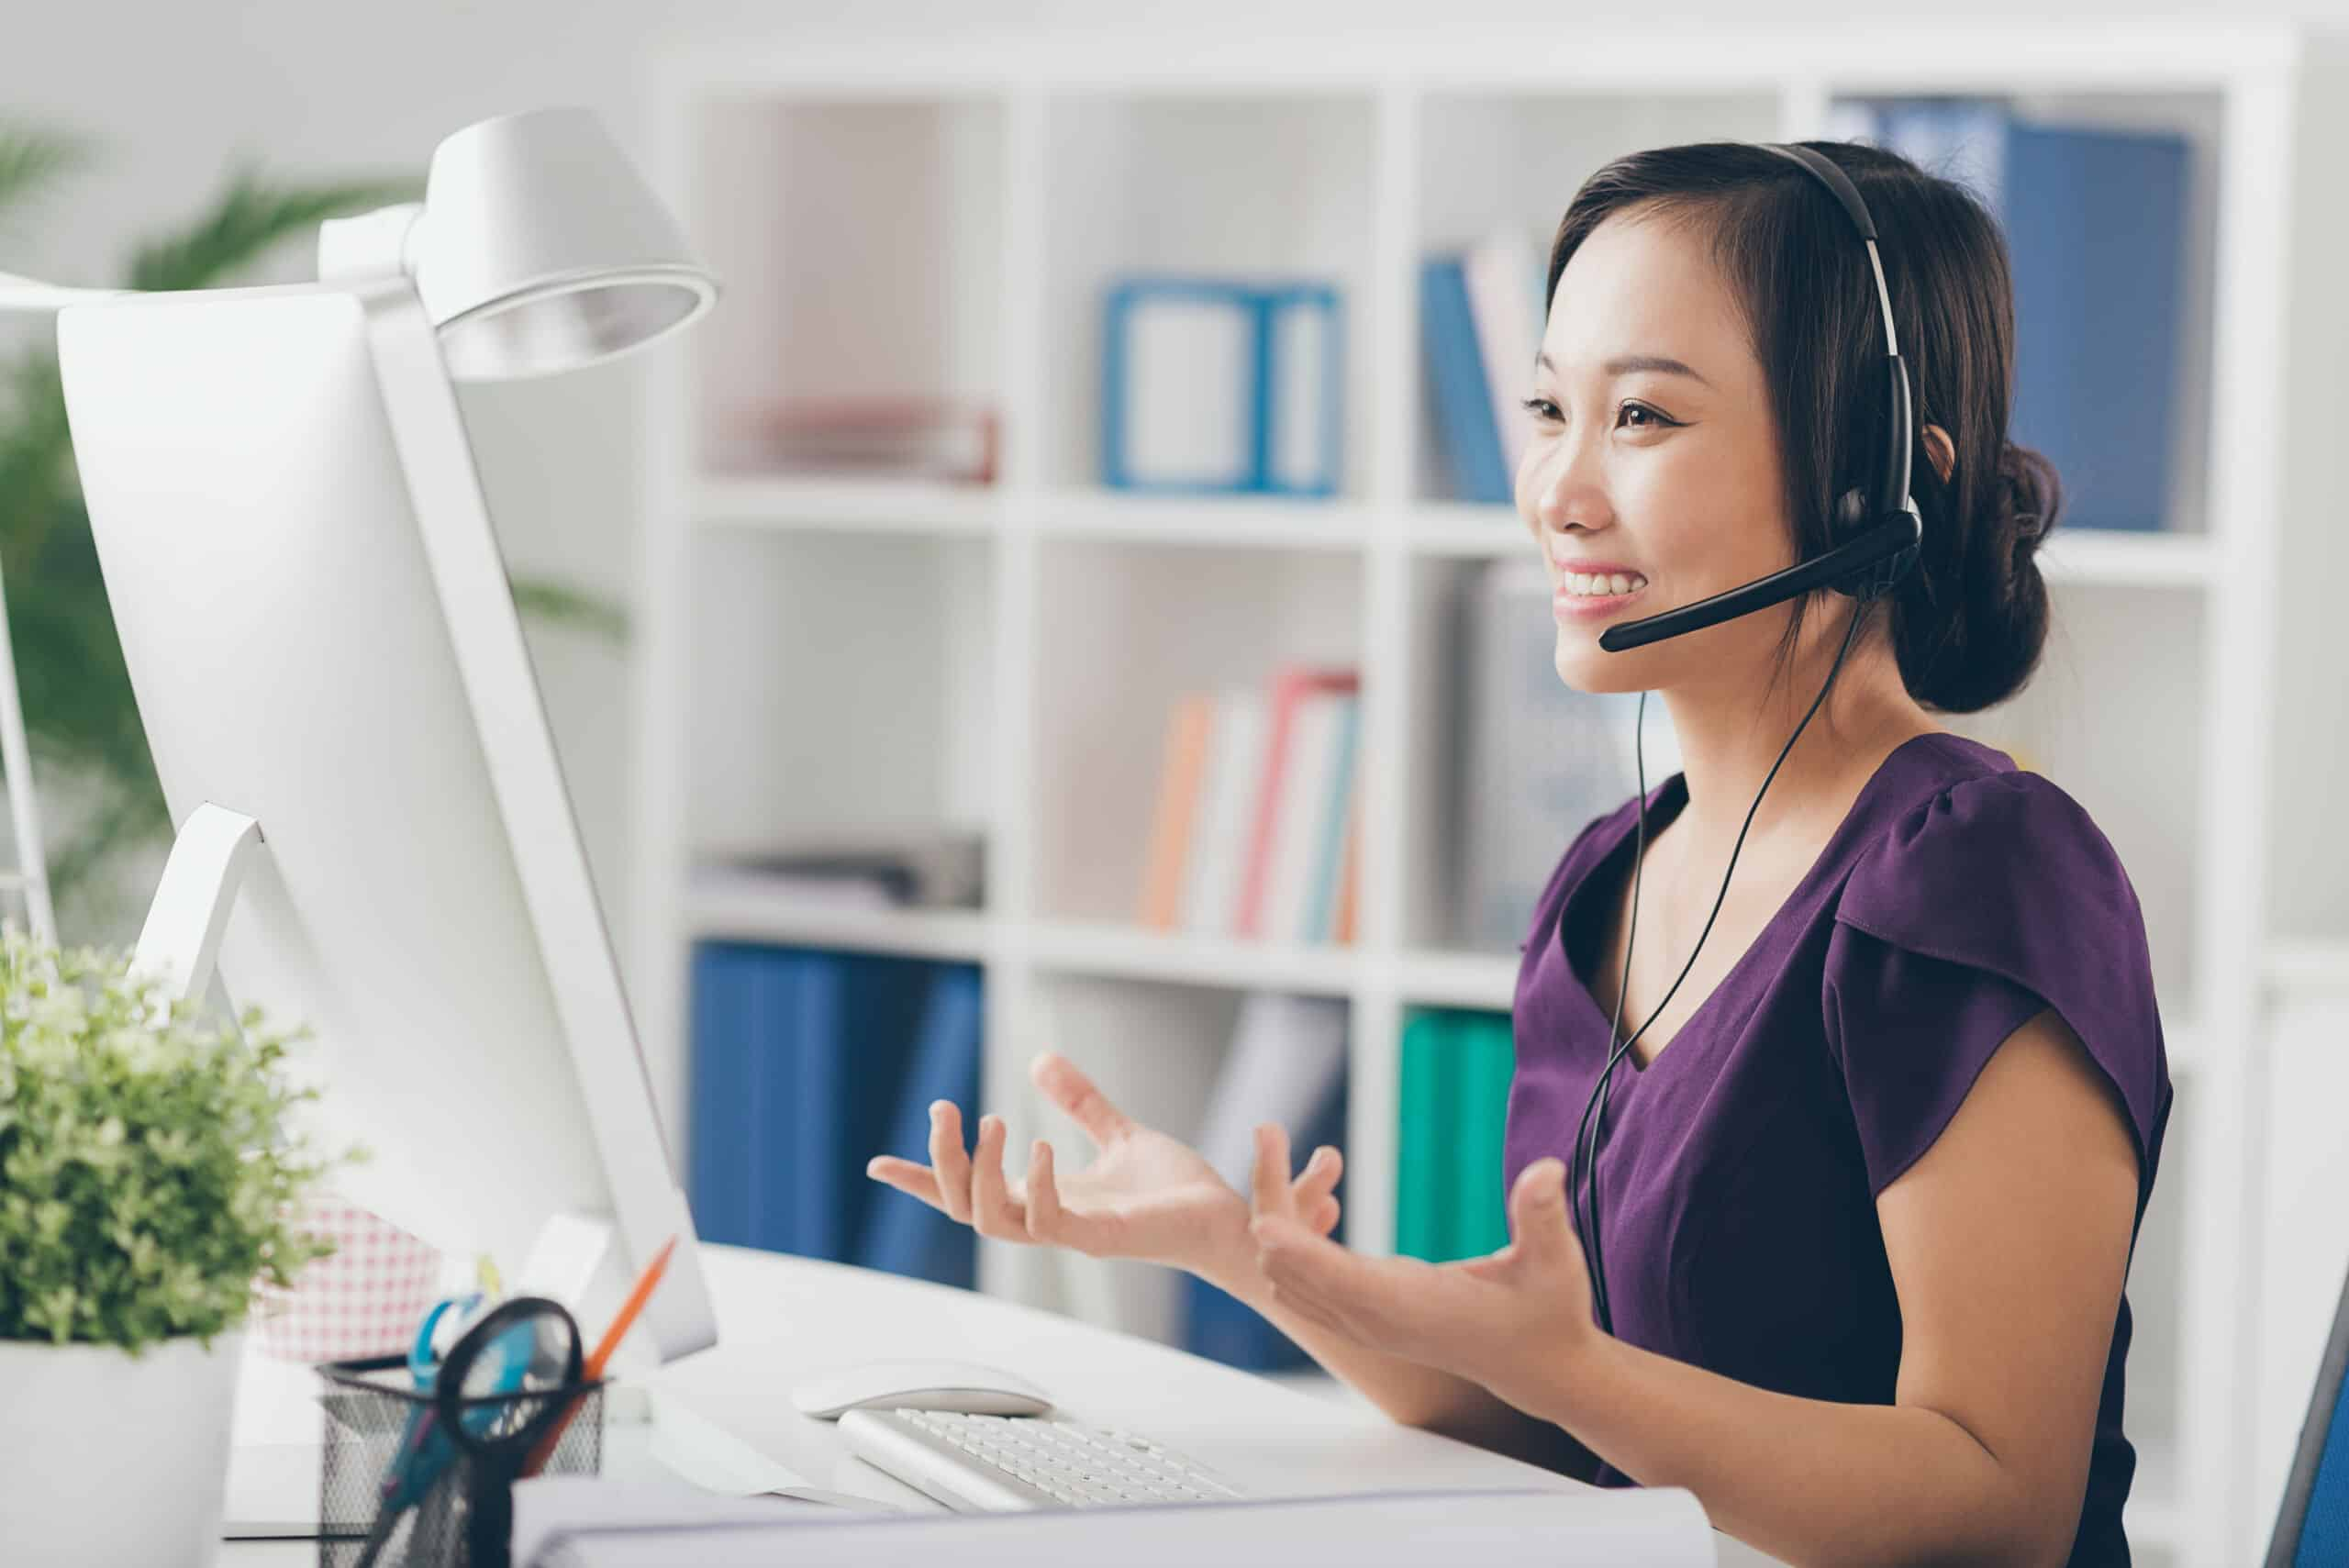 Work at Home Customer Support Agent Jobs with DISH